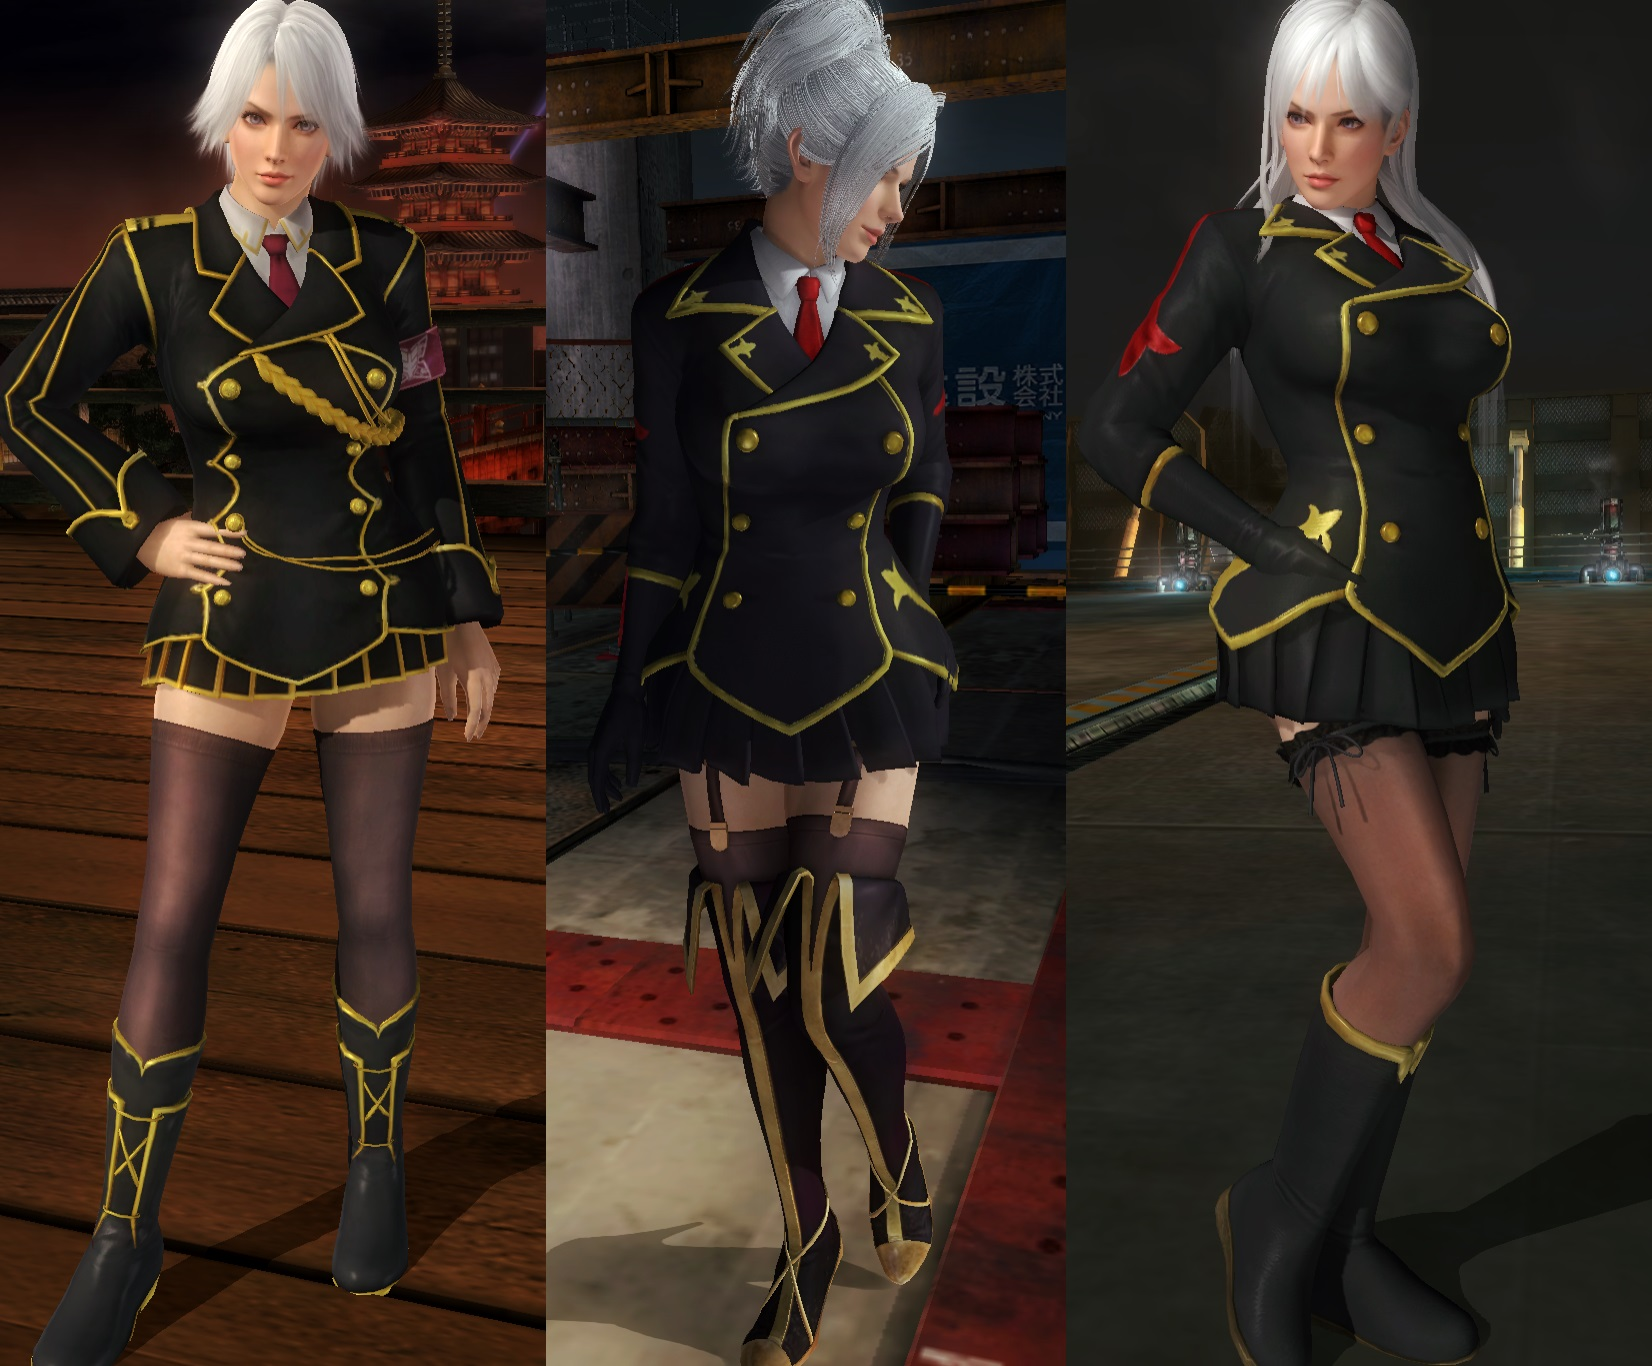 Christie Uniform 3 variations by funnybunny666